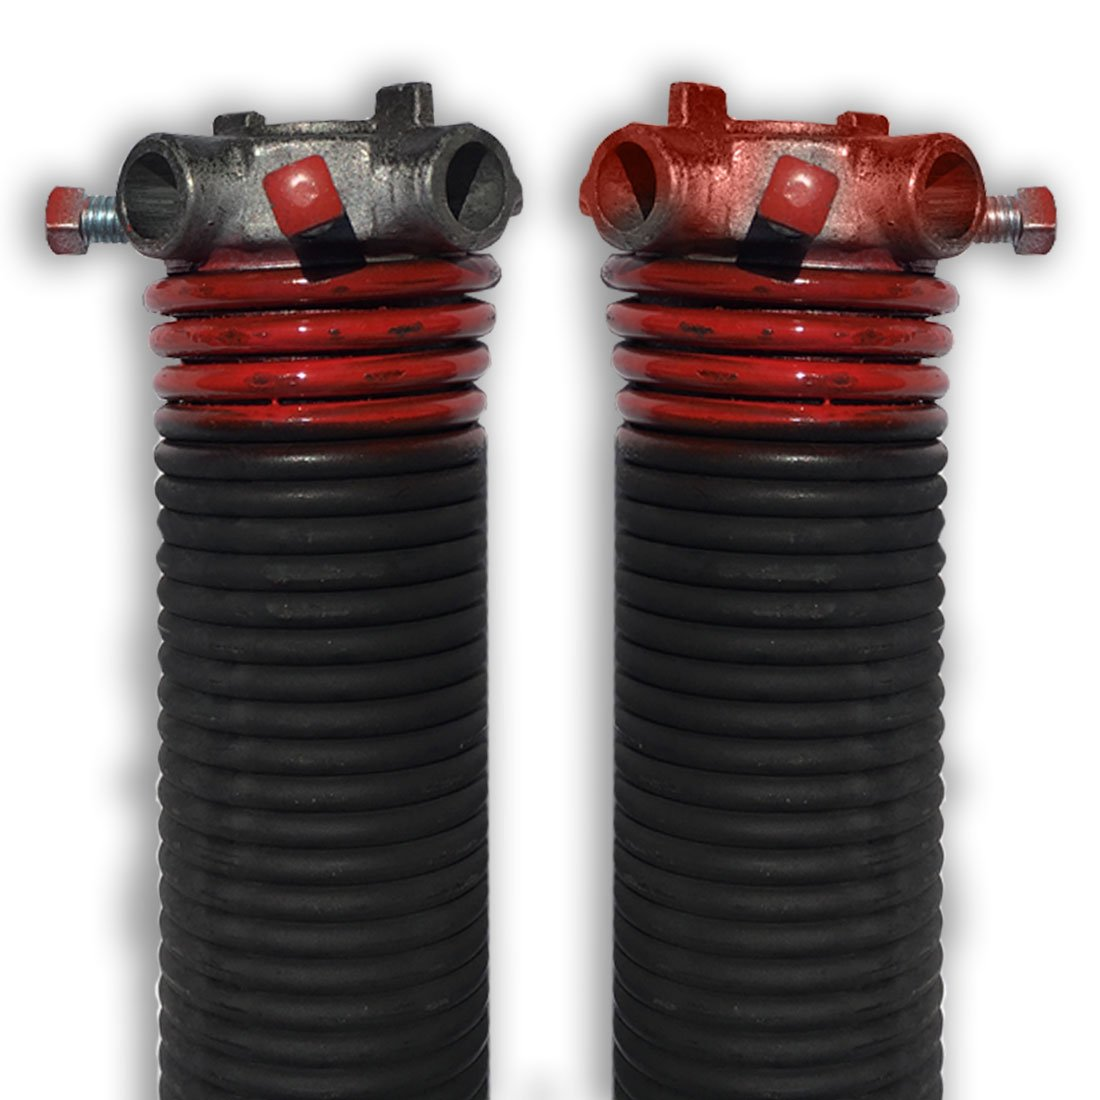 DURA-LIFT .225 x 2'' x 27'' Torsion Garage Springs (Red, Left & Right Wound)